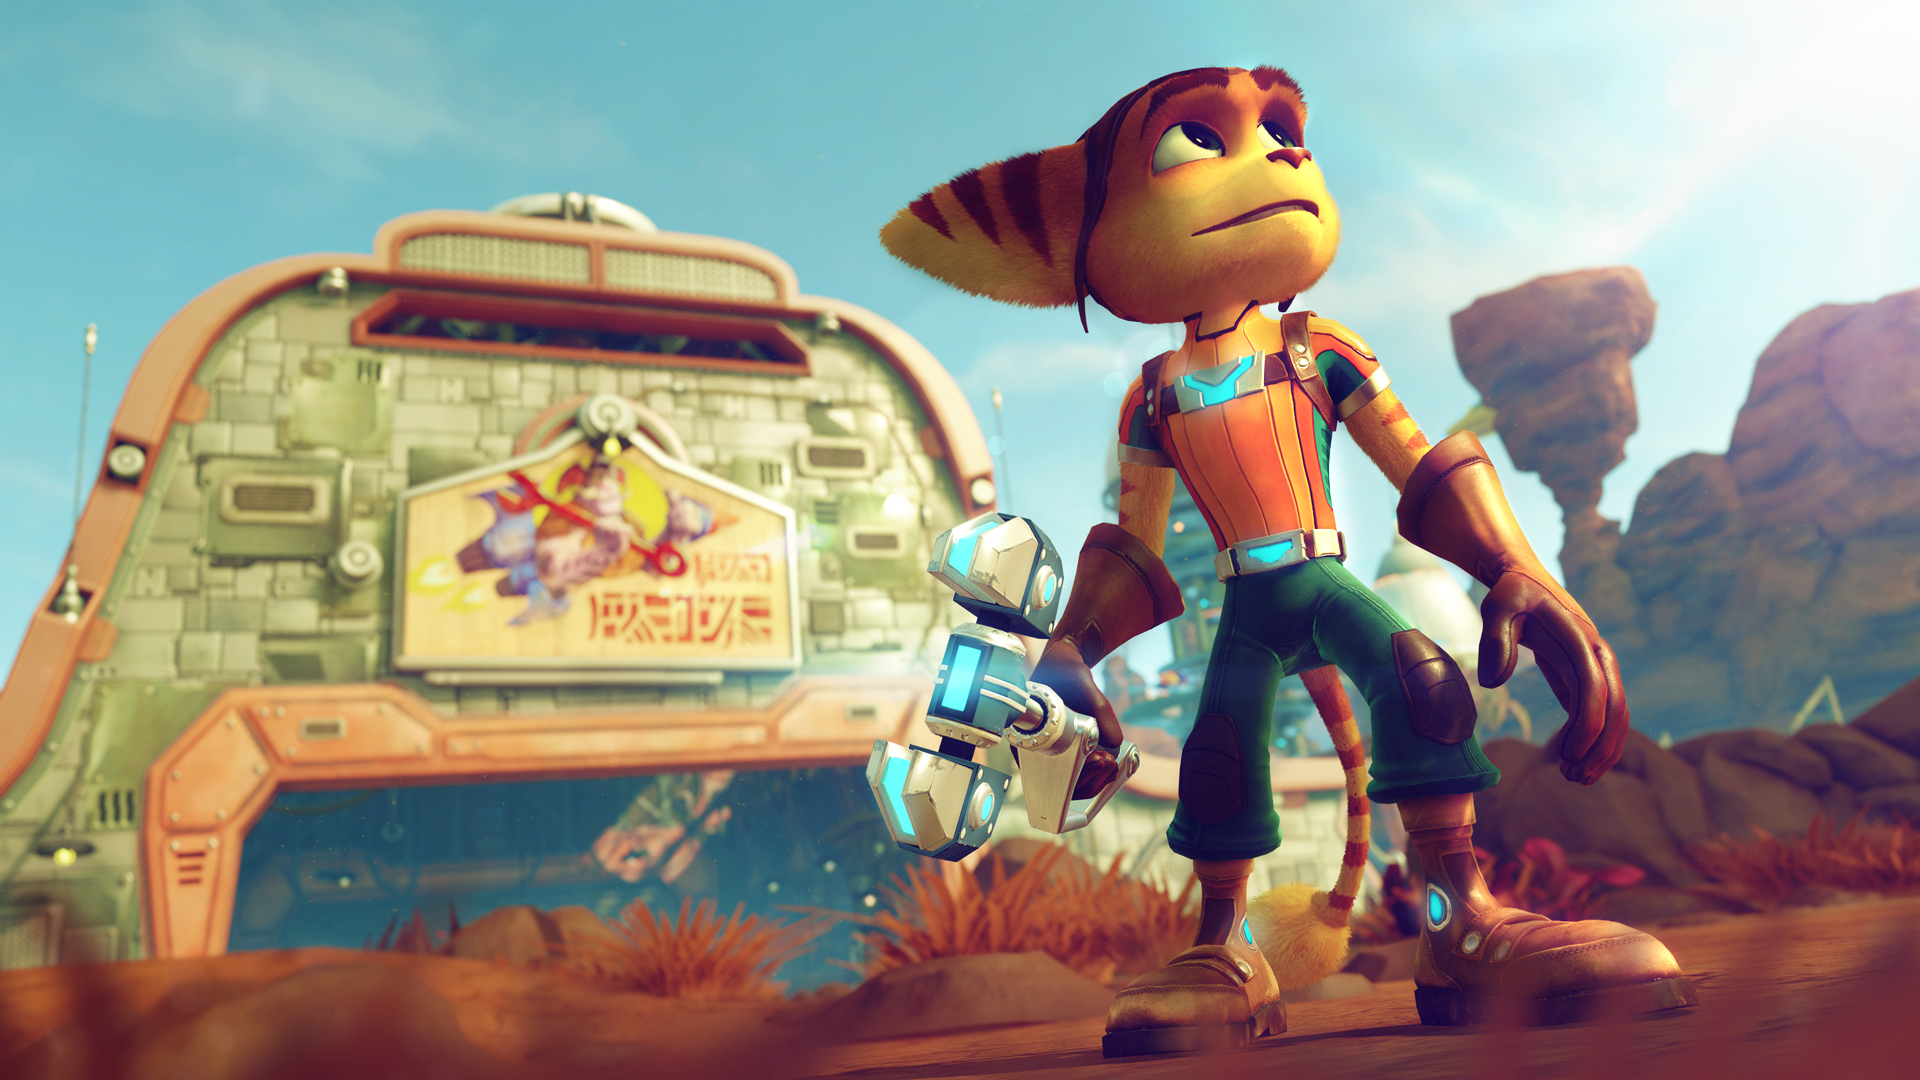 Insomniac Games Explain Why Ratchet And Clank Won't Run At 60 FPS On PS4 Pro